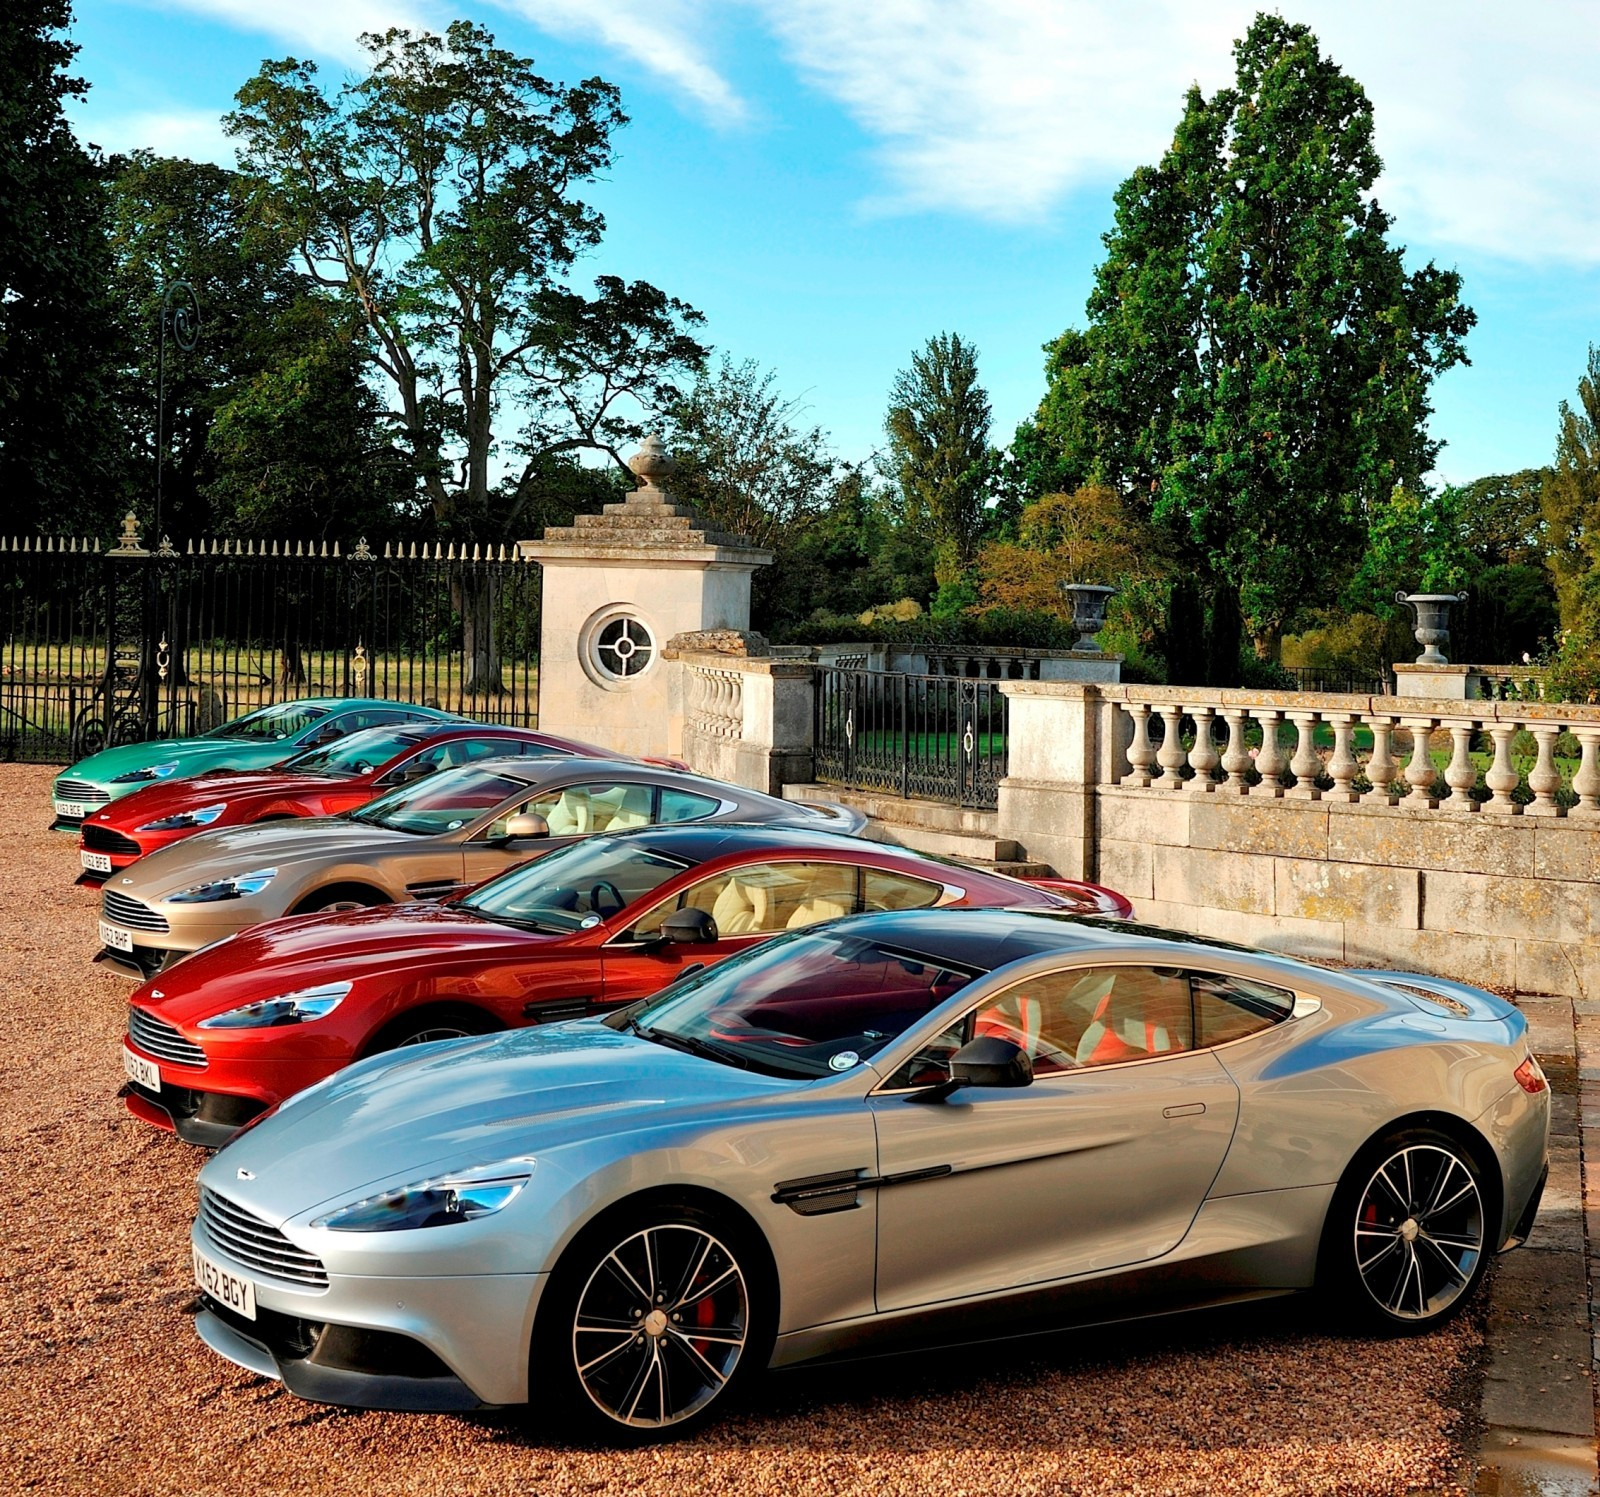 Supercar Showcase: 2014 Aston Martin Vanquish Centenary